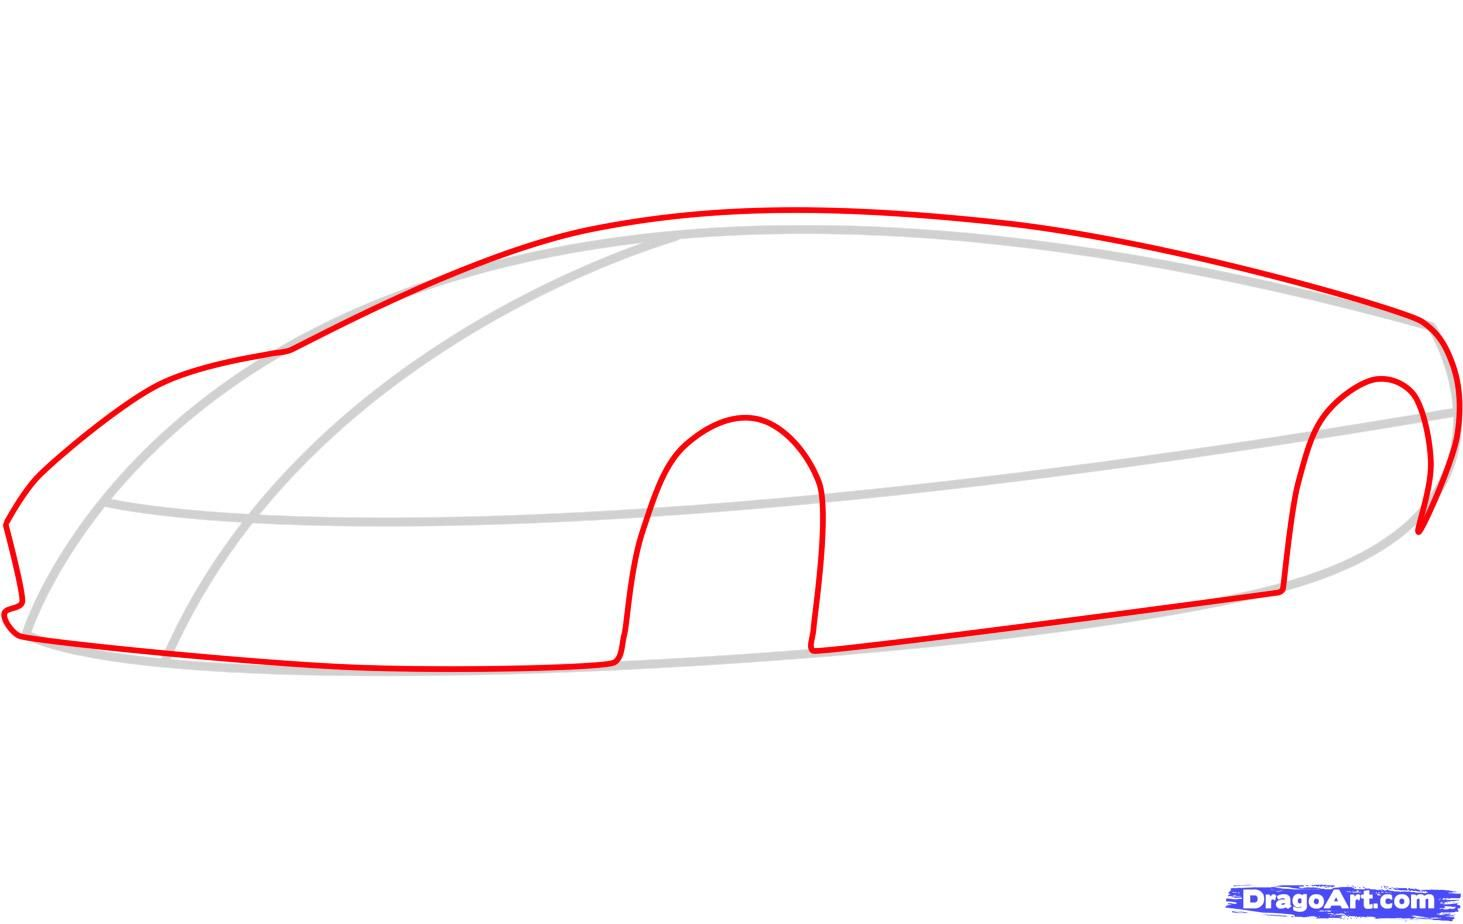 How to draw the Mercedes-Benz car step by step 3